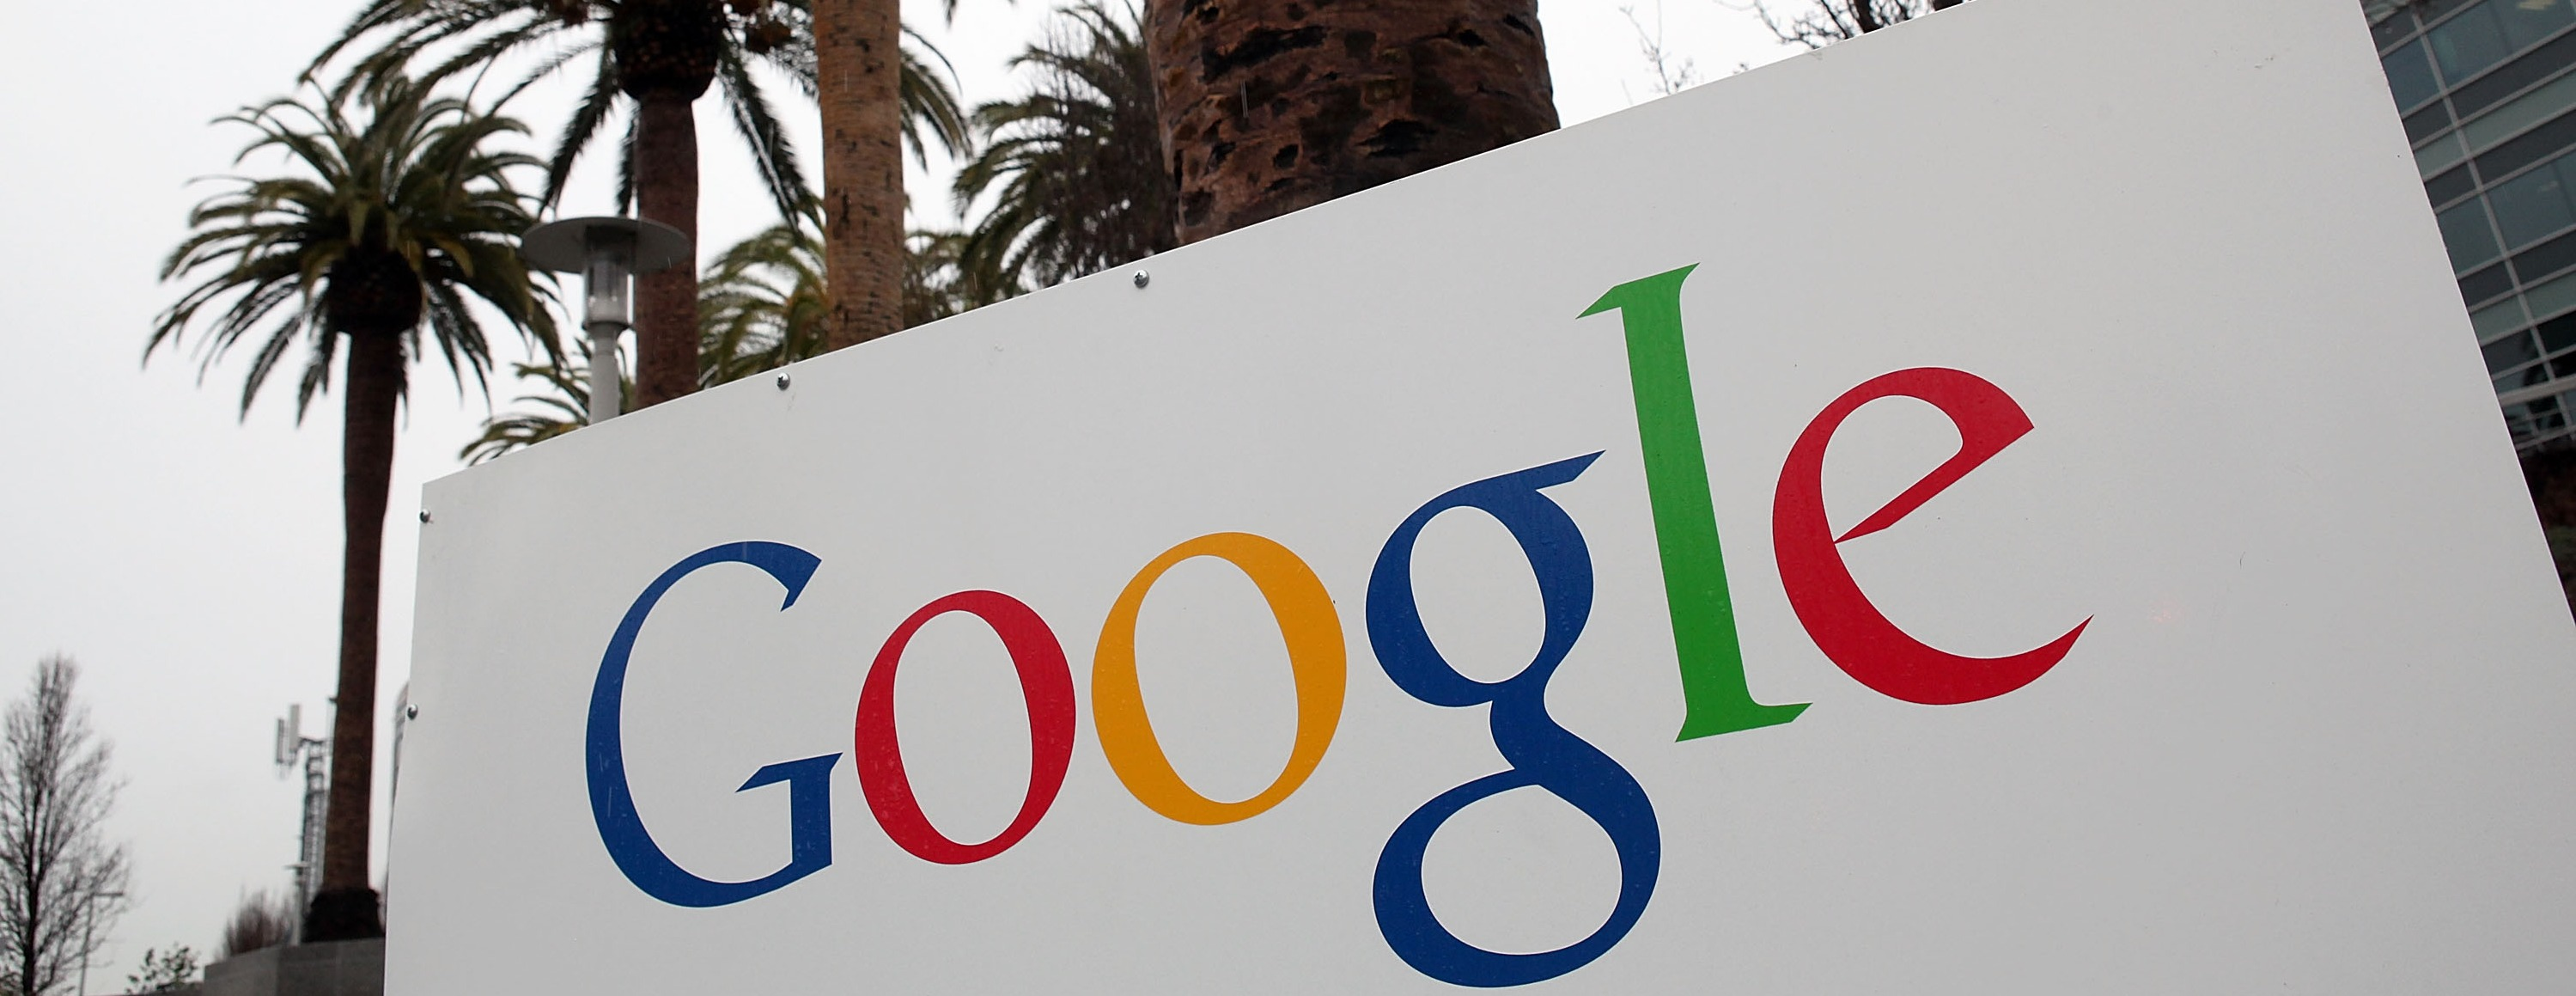 Google reportedly losing interest in the InterDigital patent trove